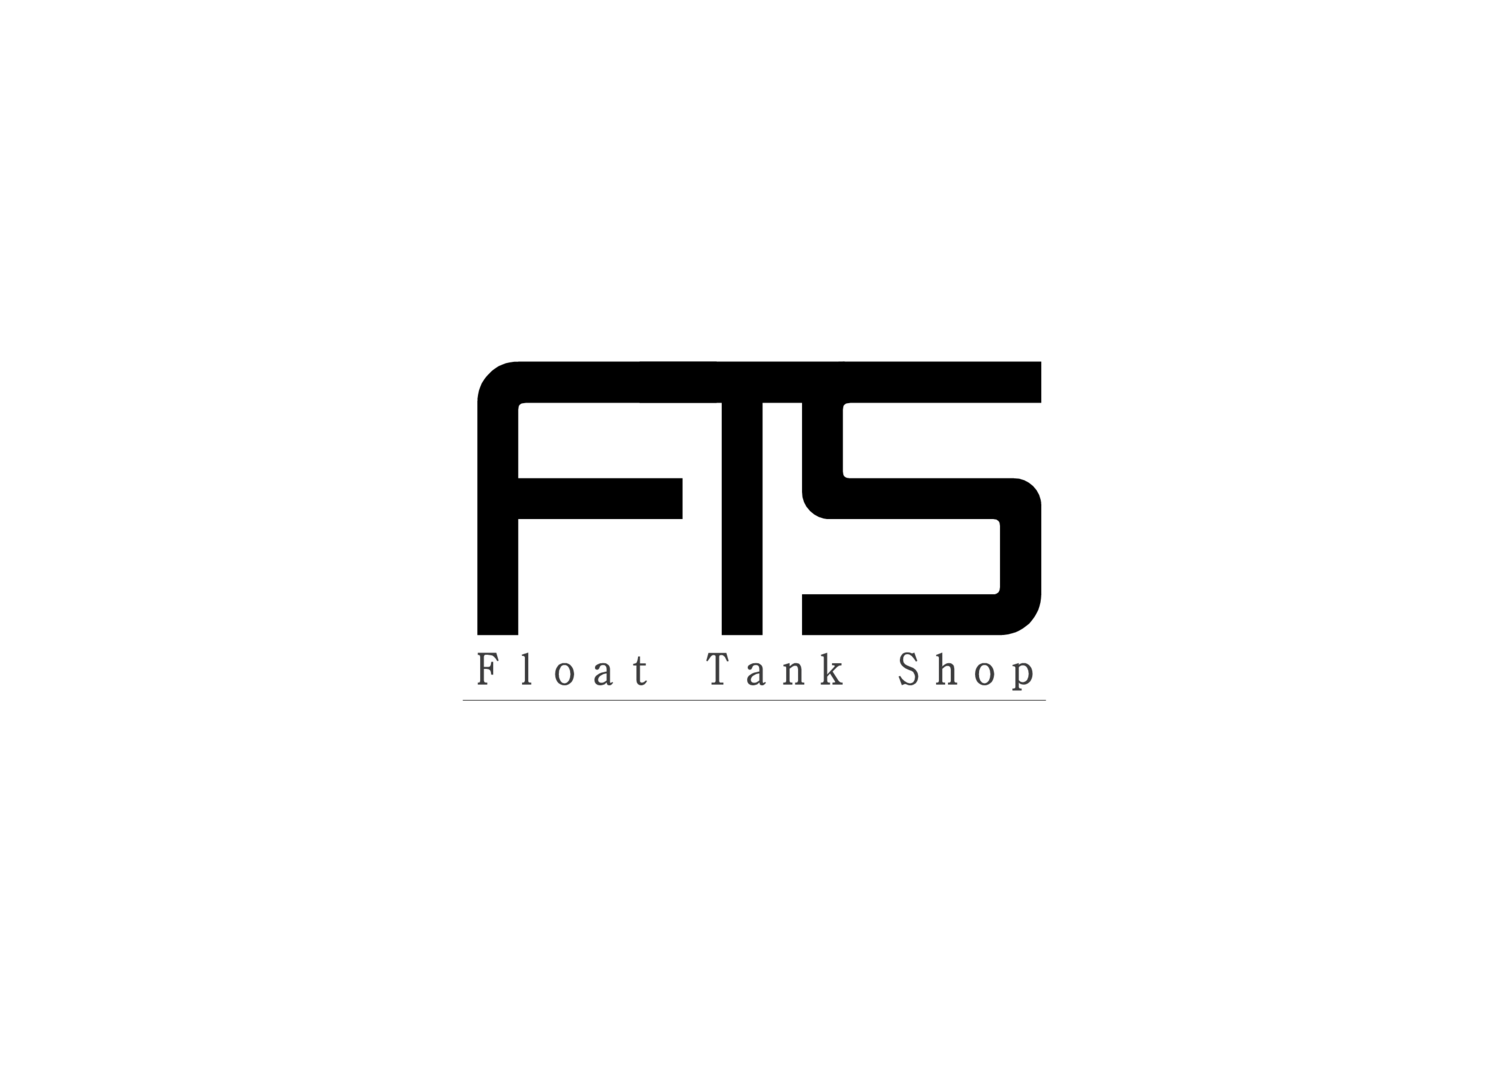 Float Tank Shop